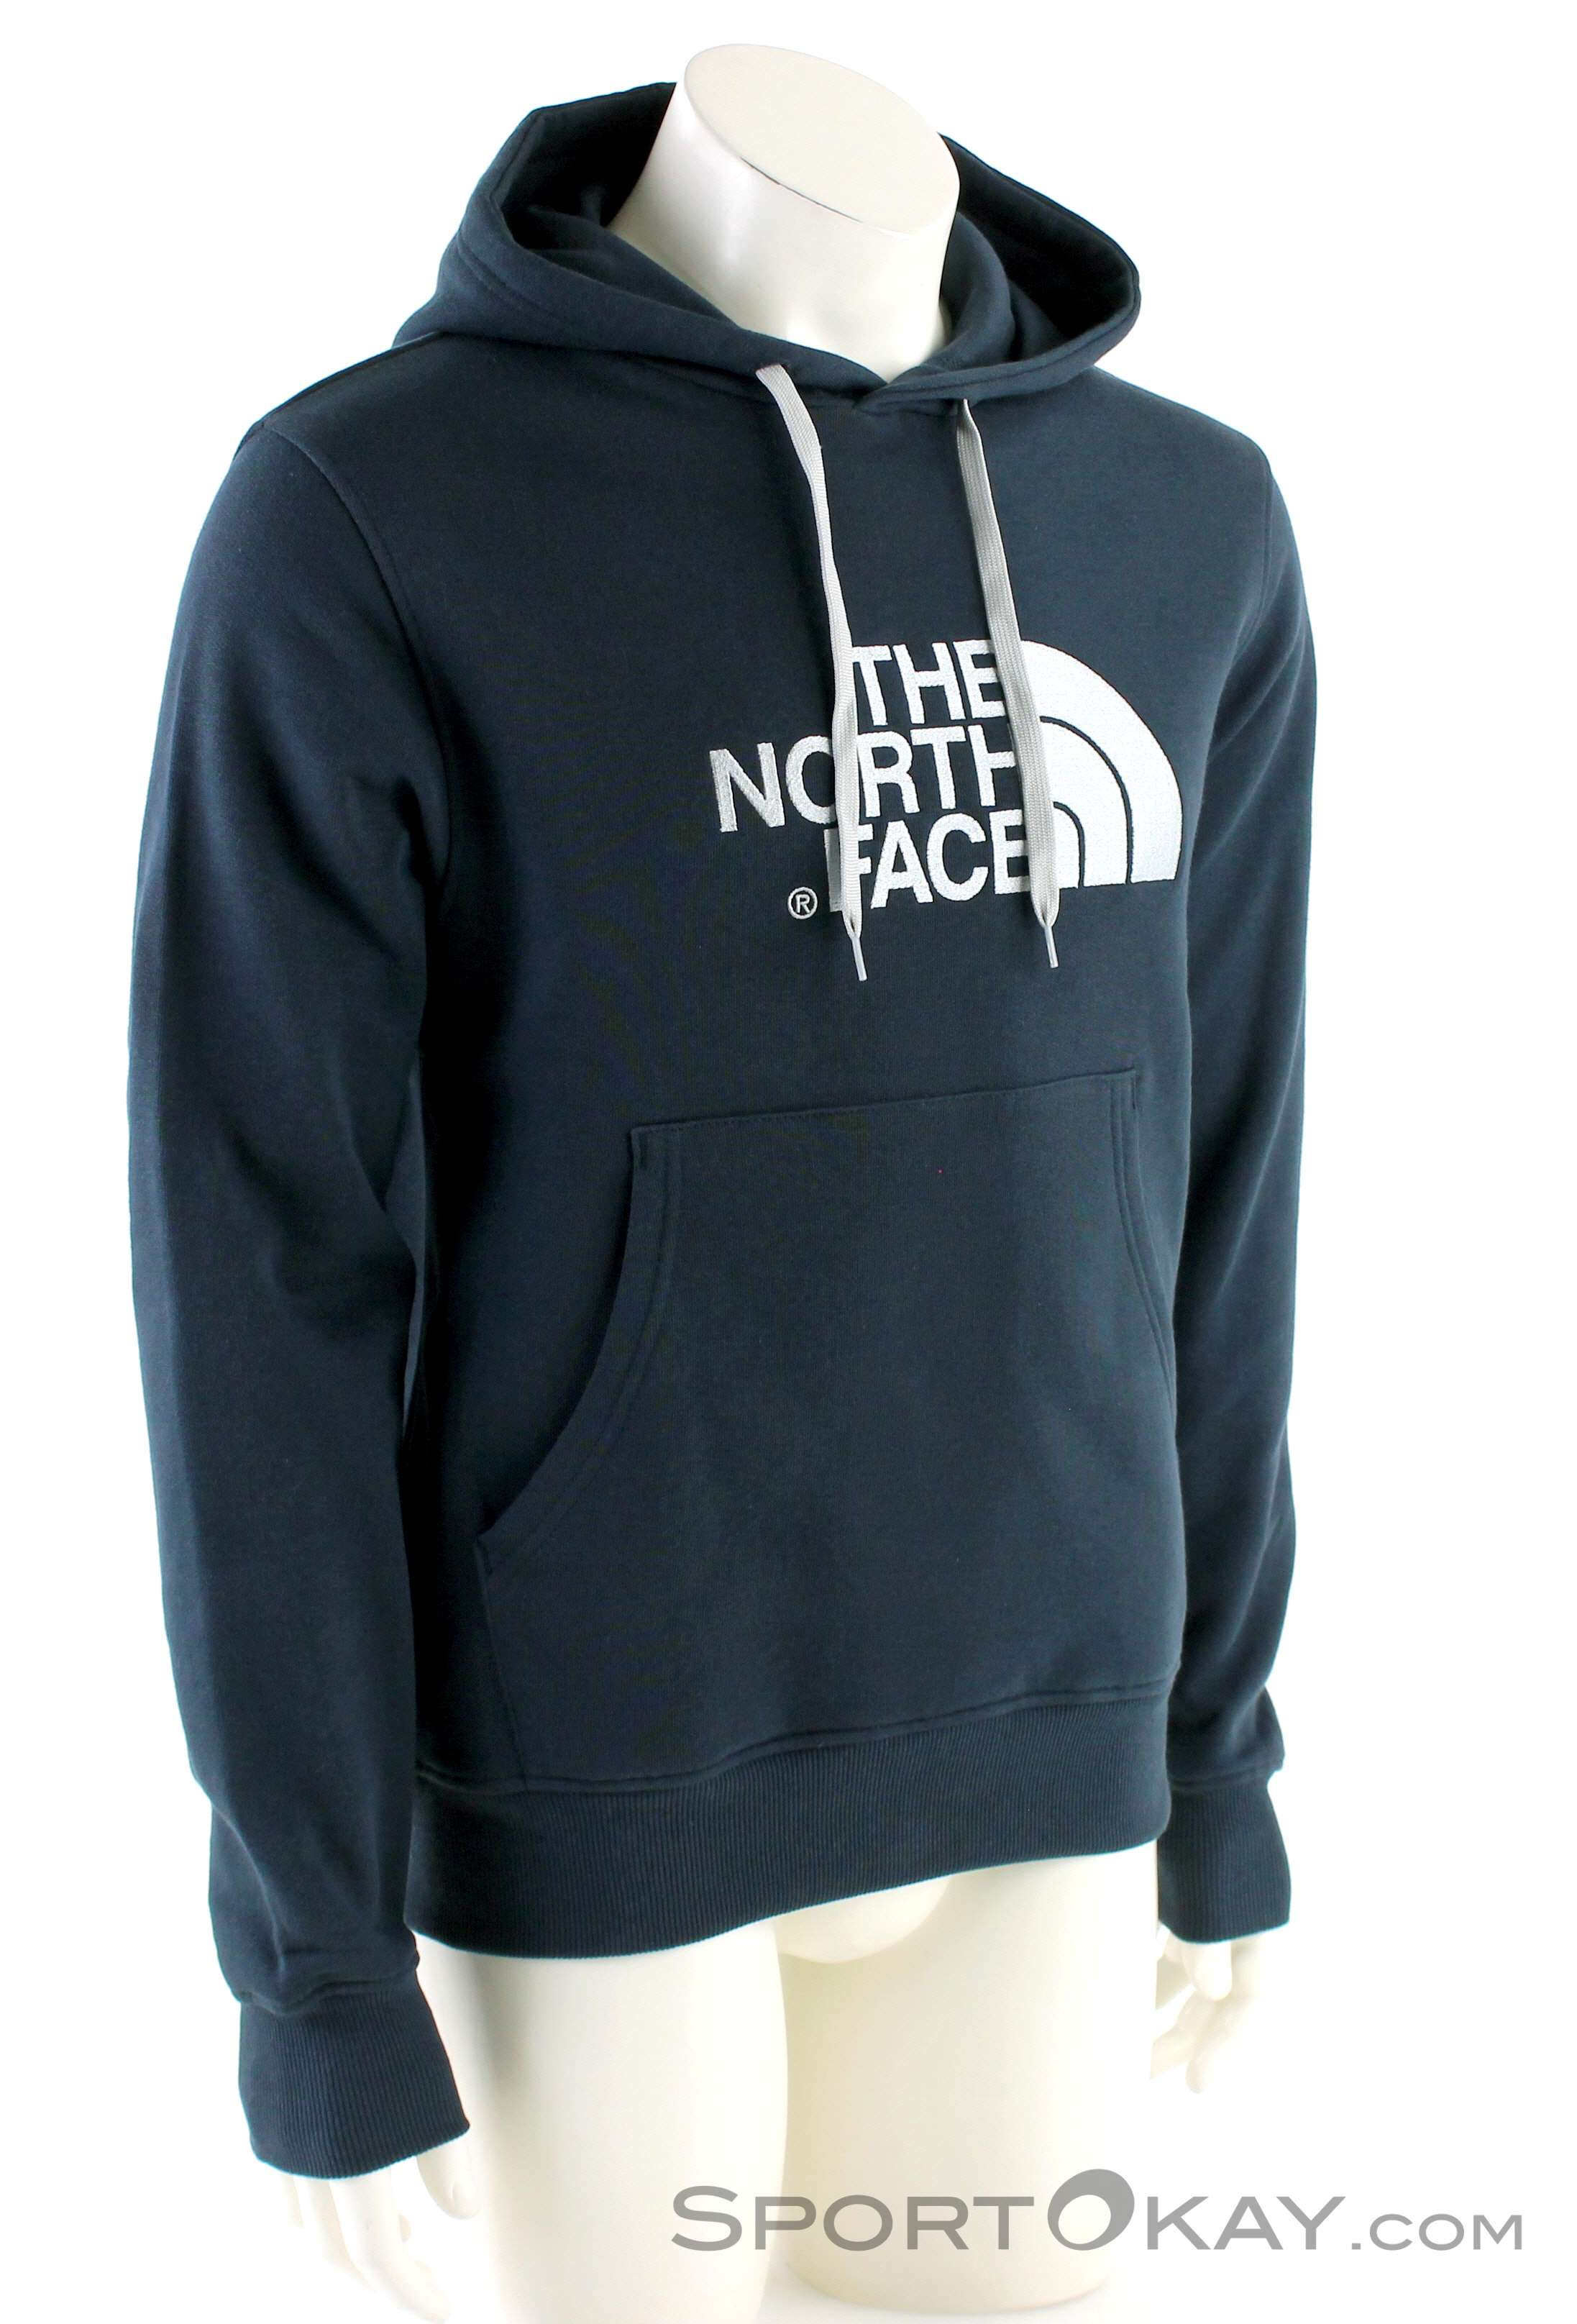 The North Face Drew Peak PLV HD Herren Sweater-Blau-M